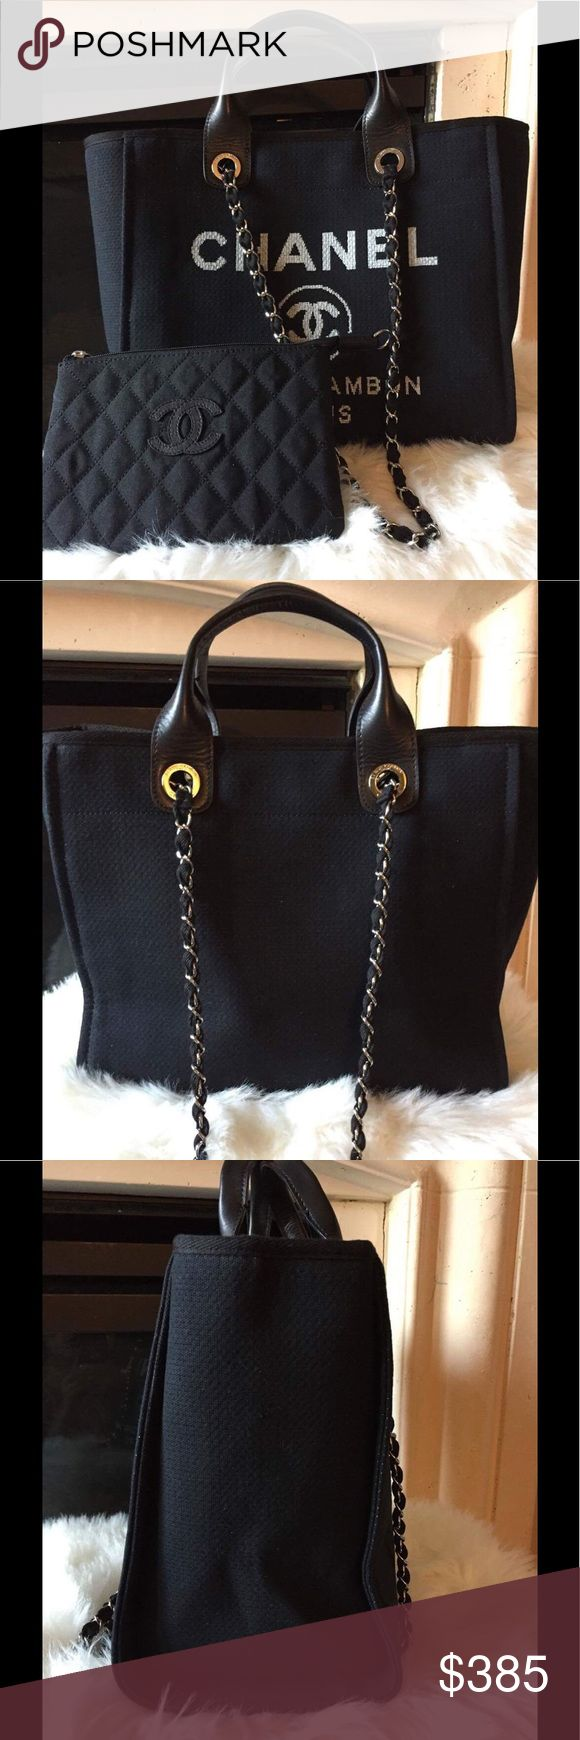 Summer Beach Chanel Tote Bag Black Medium Medium size tote bag , comes with dust bag, card, serial CHANEL Bags Totes